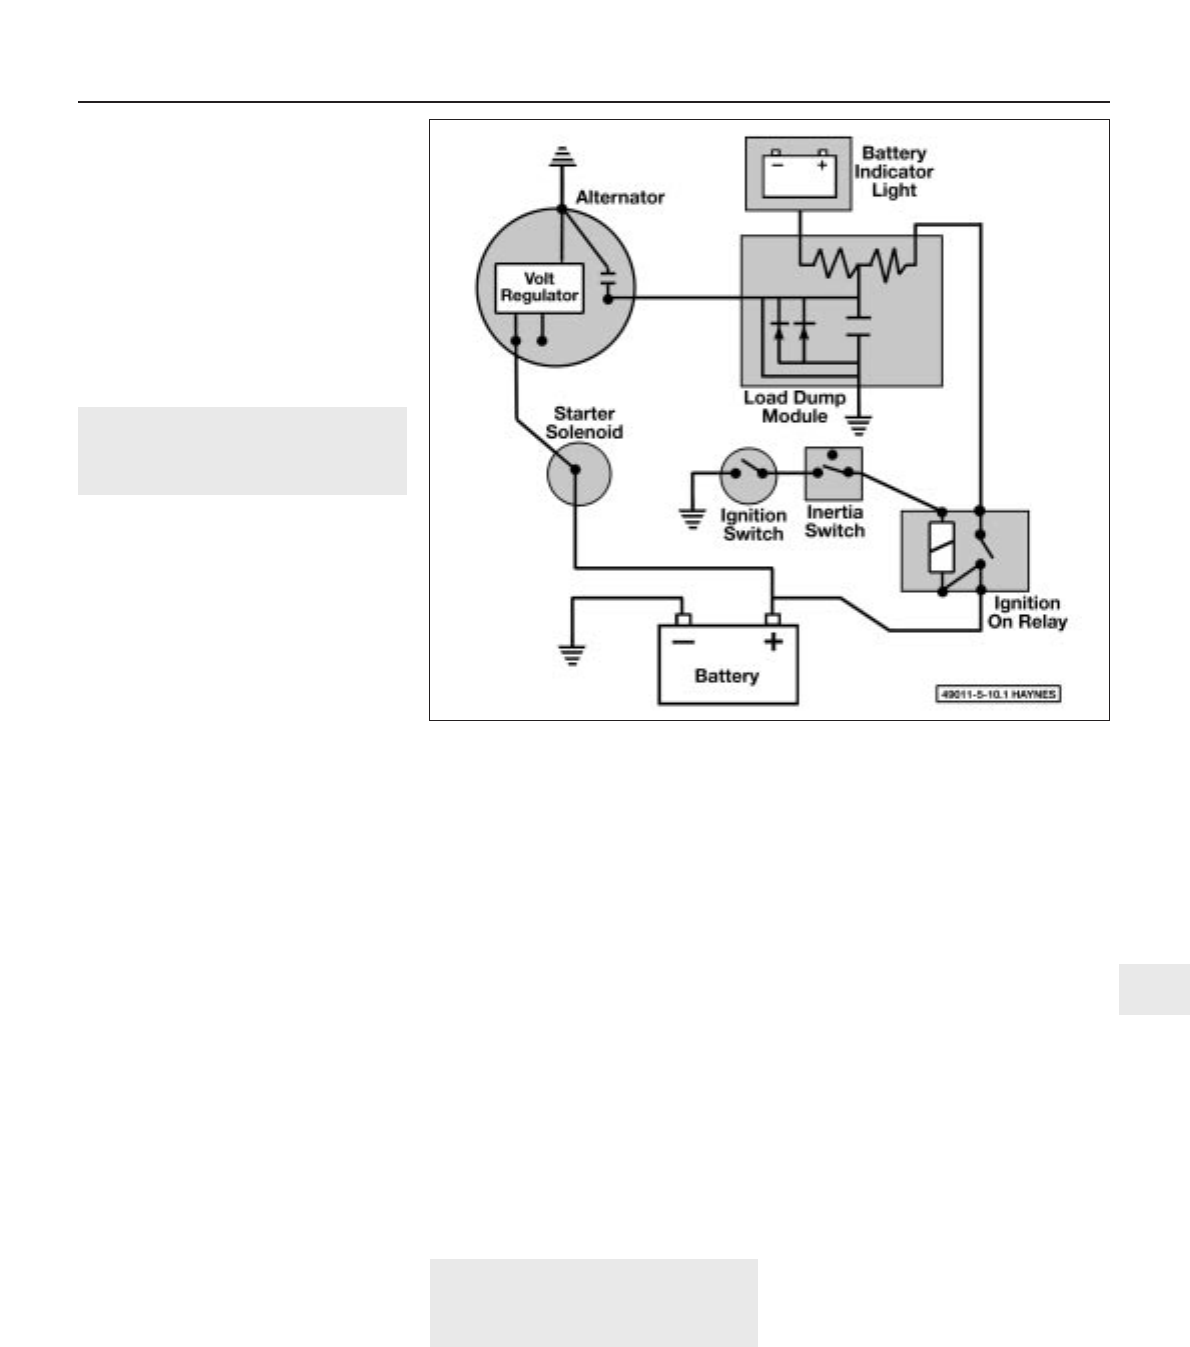 Jaguar Alternator Wiring Diagram